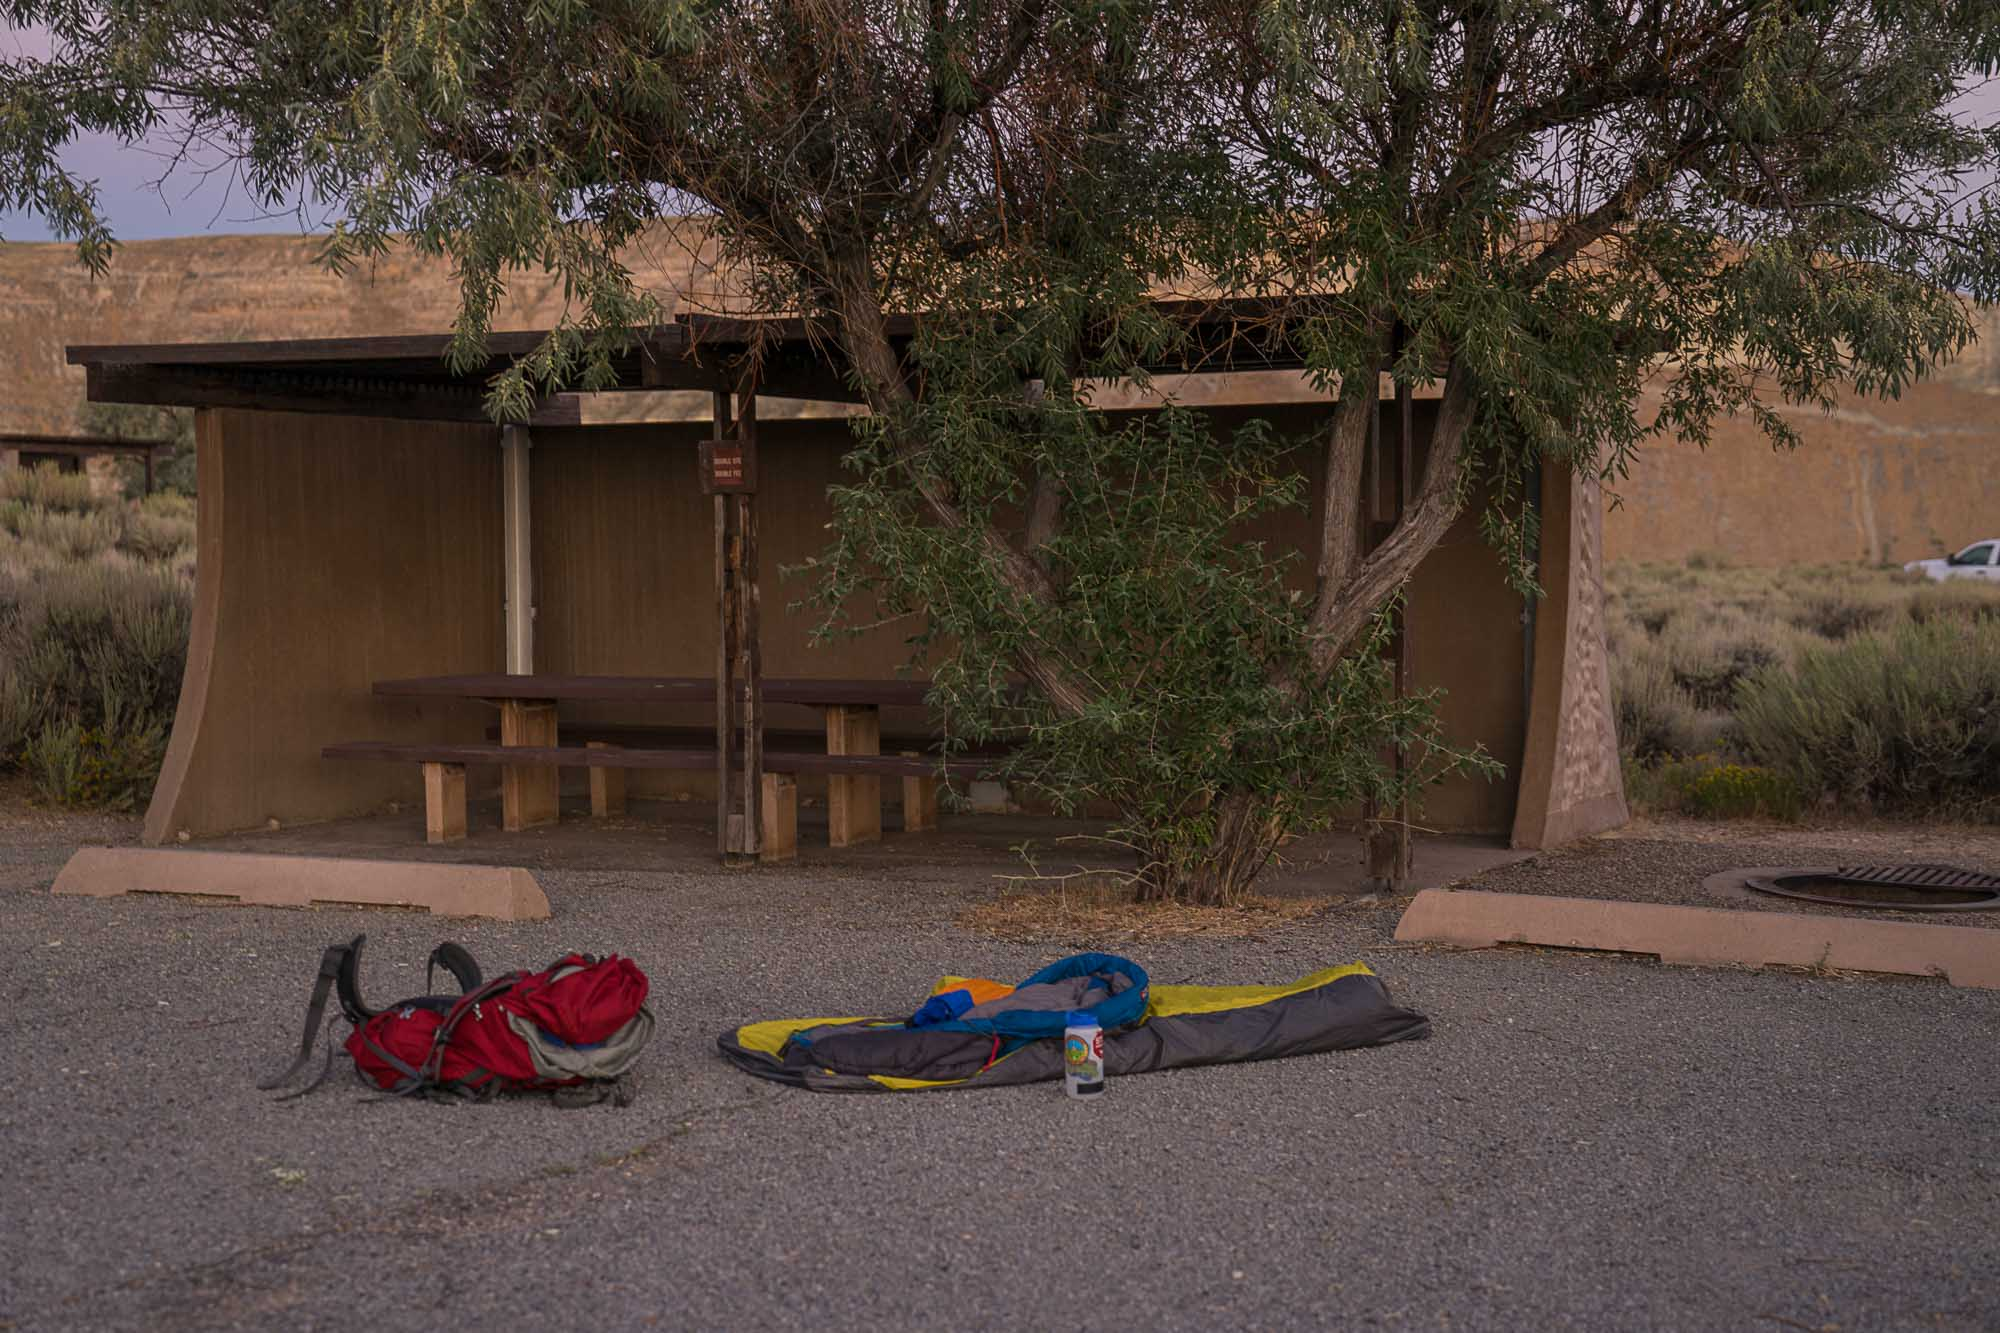 A sleeping bag and backpack in Firehole Canyon in Green River, Wyoming.